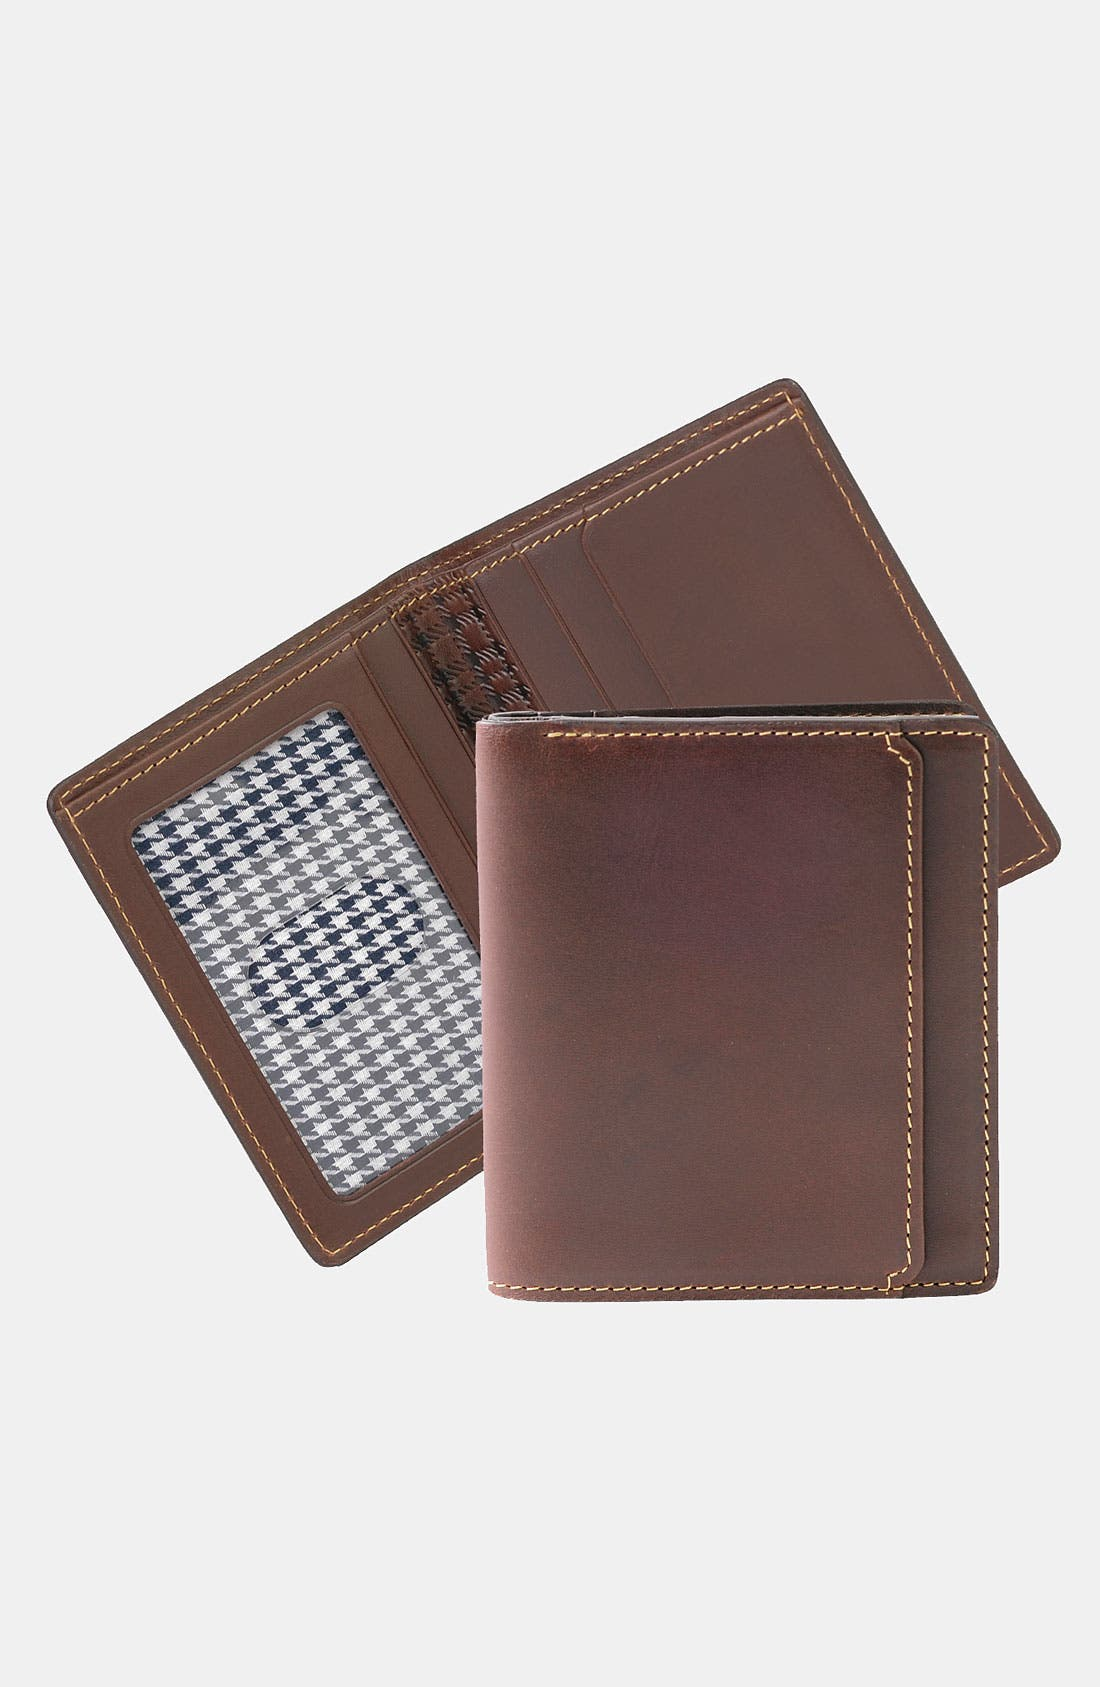 Alternate Image 1 Selected - Boconi 'Bryant' RFID Blocker Wallet